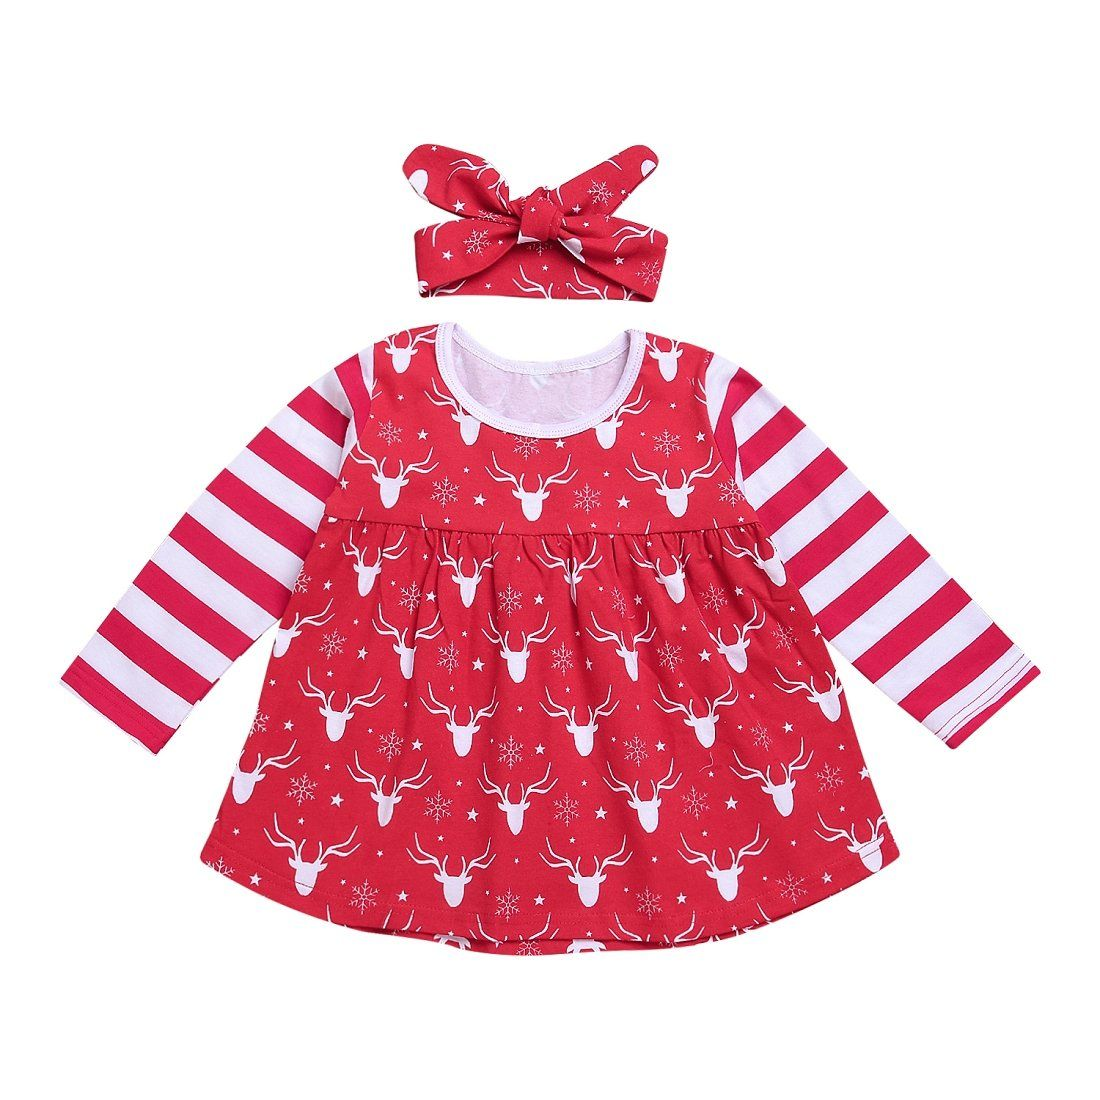 2pcs baby girls clothes cpei baby girls red strip deer dress bowknot headband red 3 6 months materialcotton blend christmas theme lovely cute